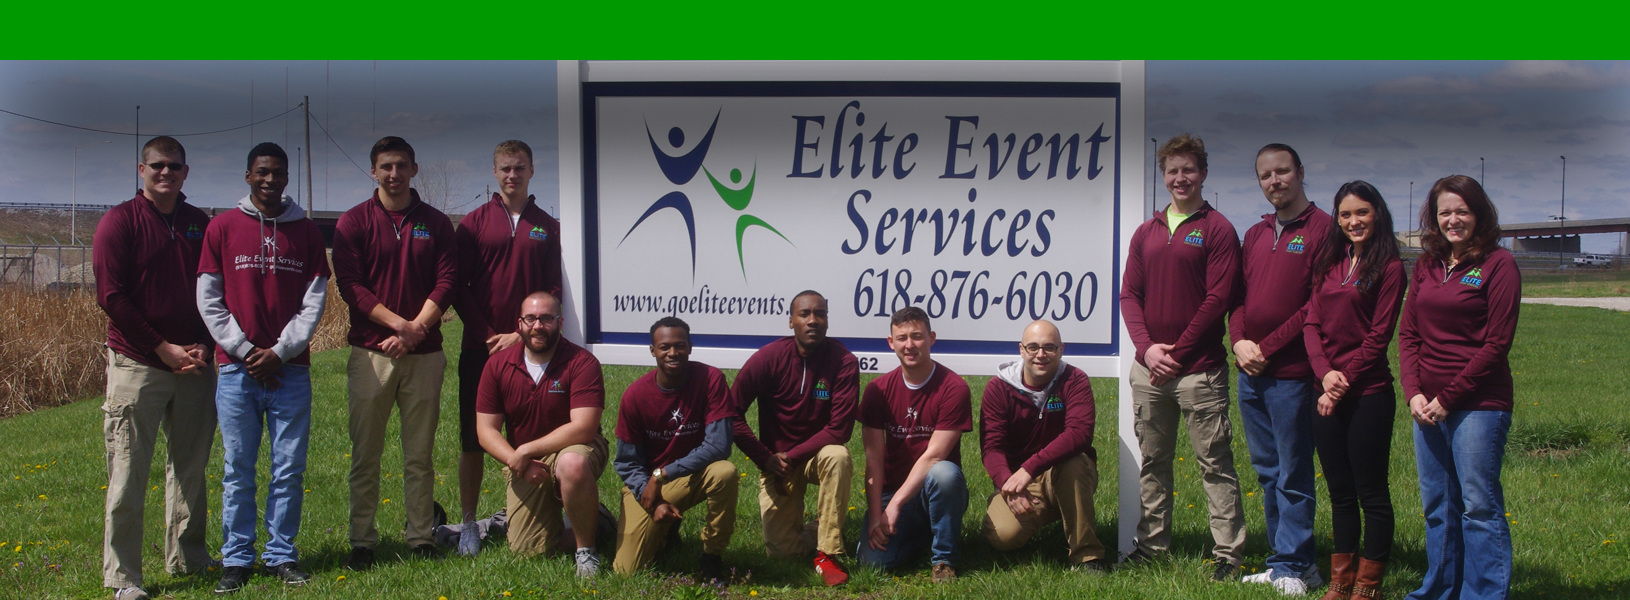 About Elite Event Services!